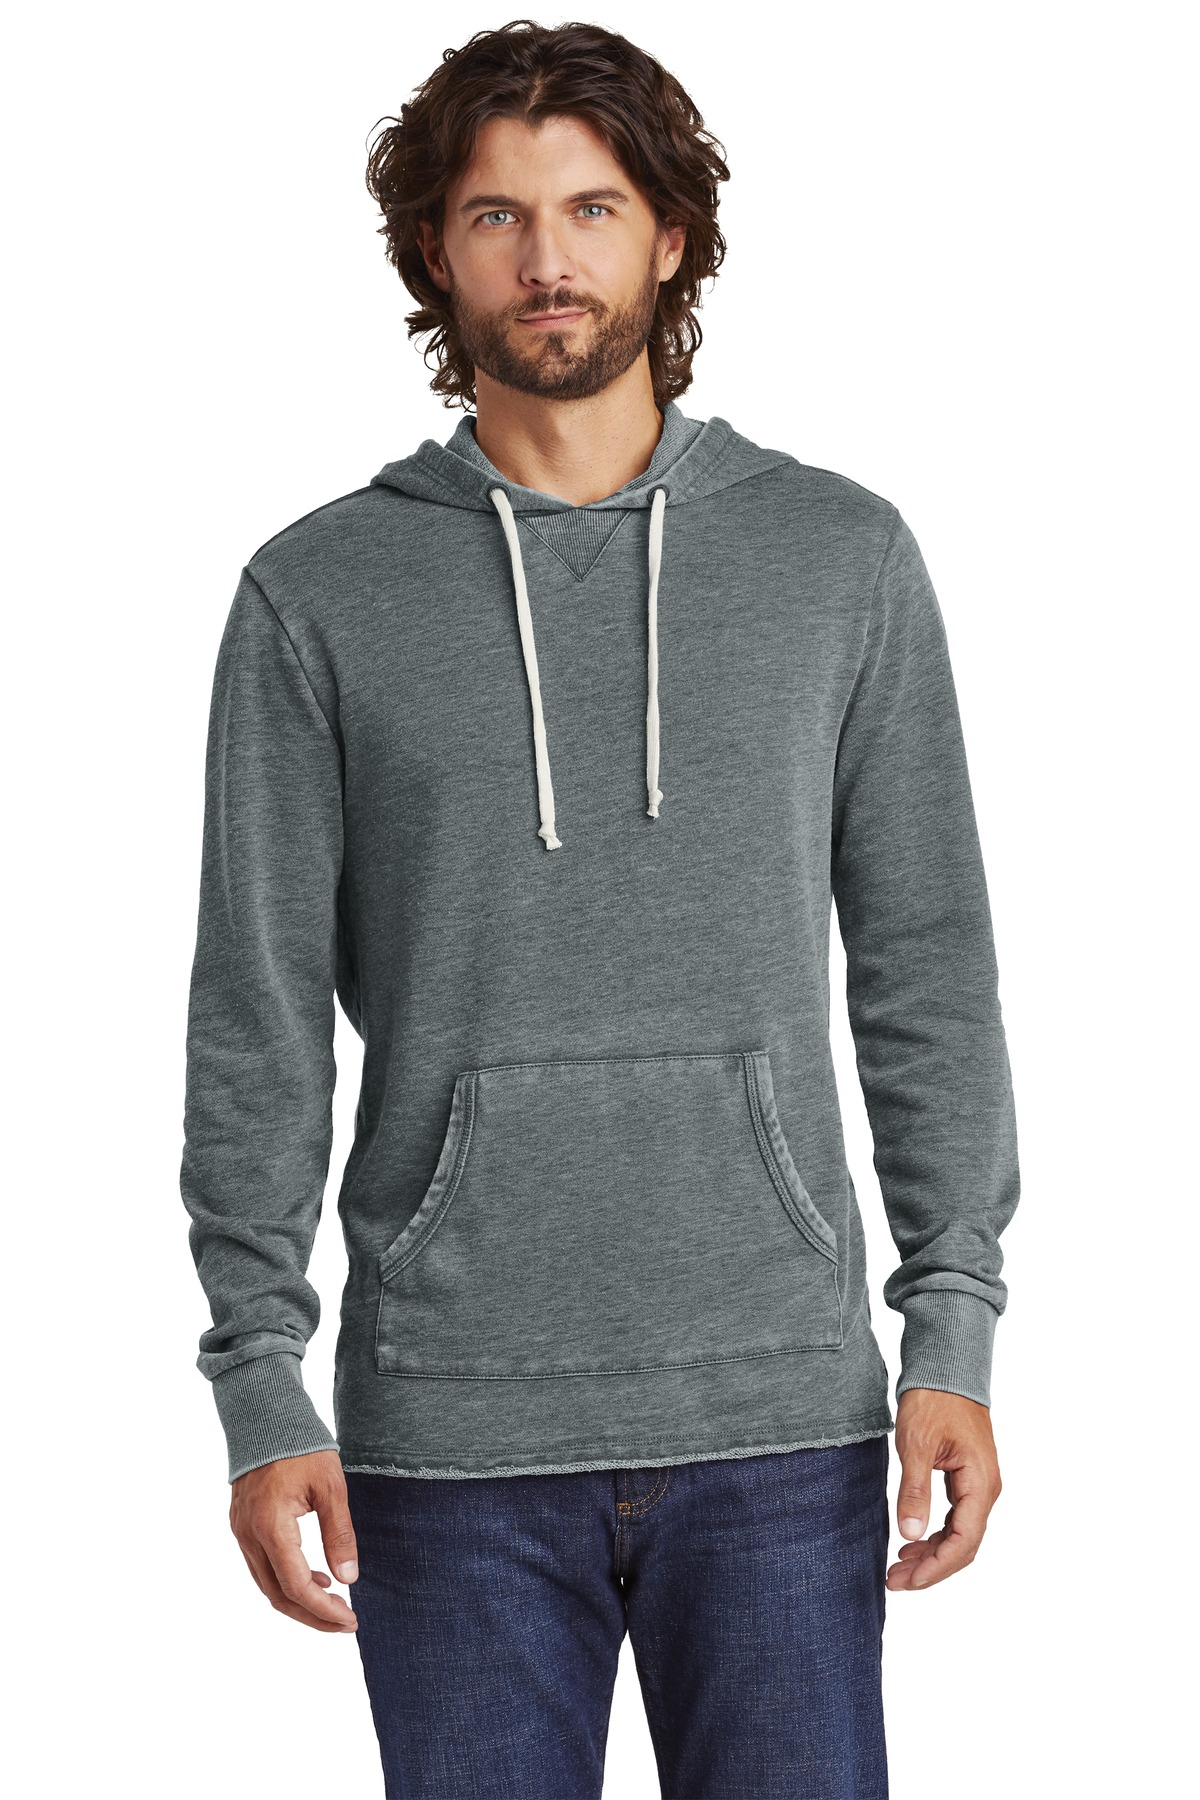 Alternative Burnout Schoolyard Hoodie. AA8629 - Washed Black